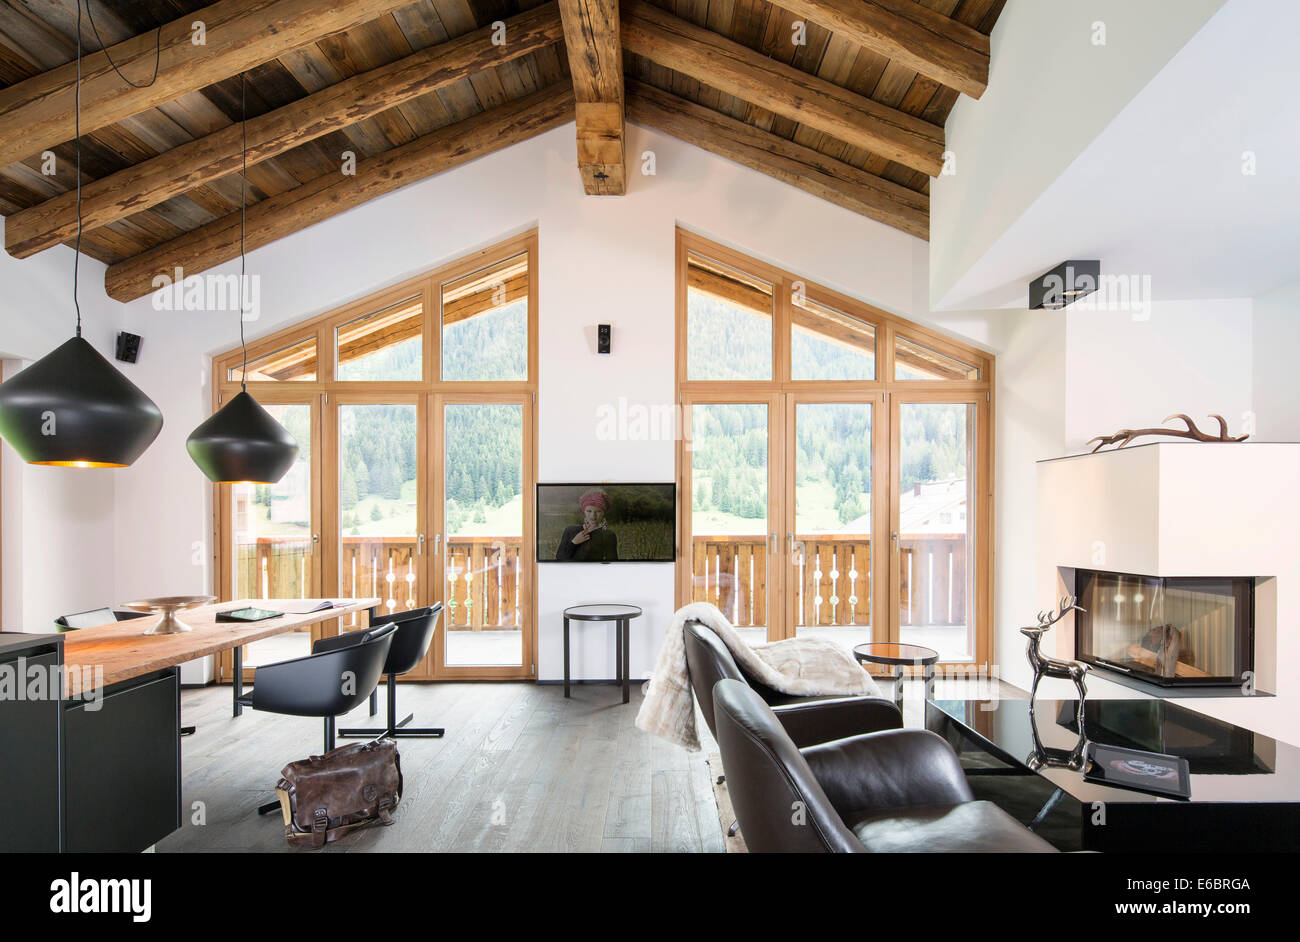 Interior view of a chalet, Innsbruck, North Tyrol, Austria - Stock Image